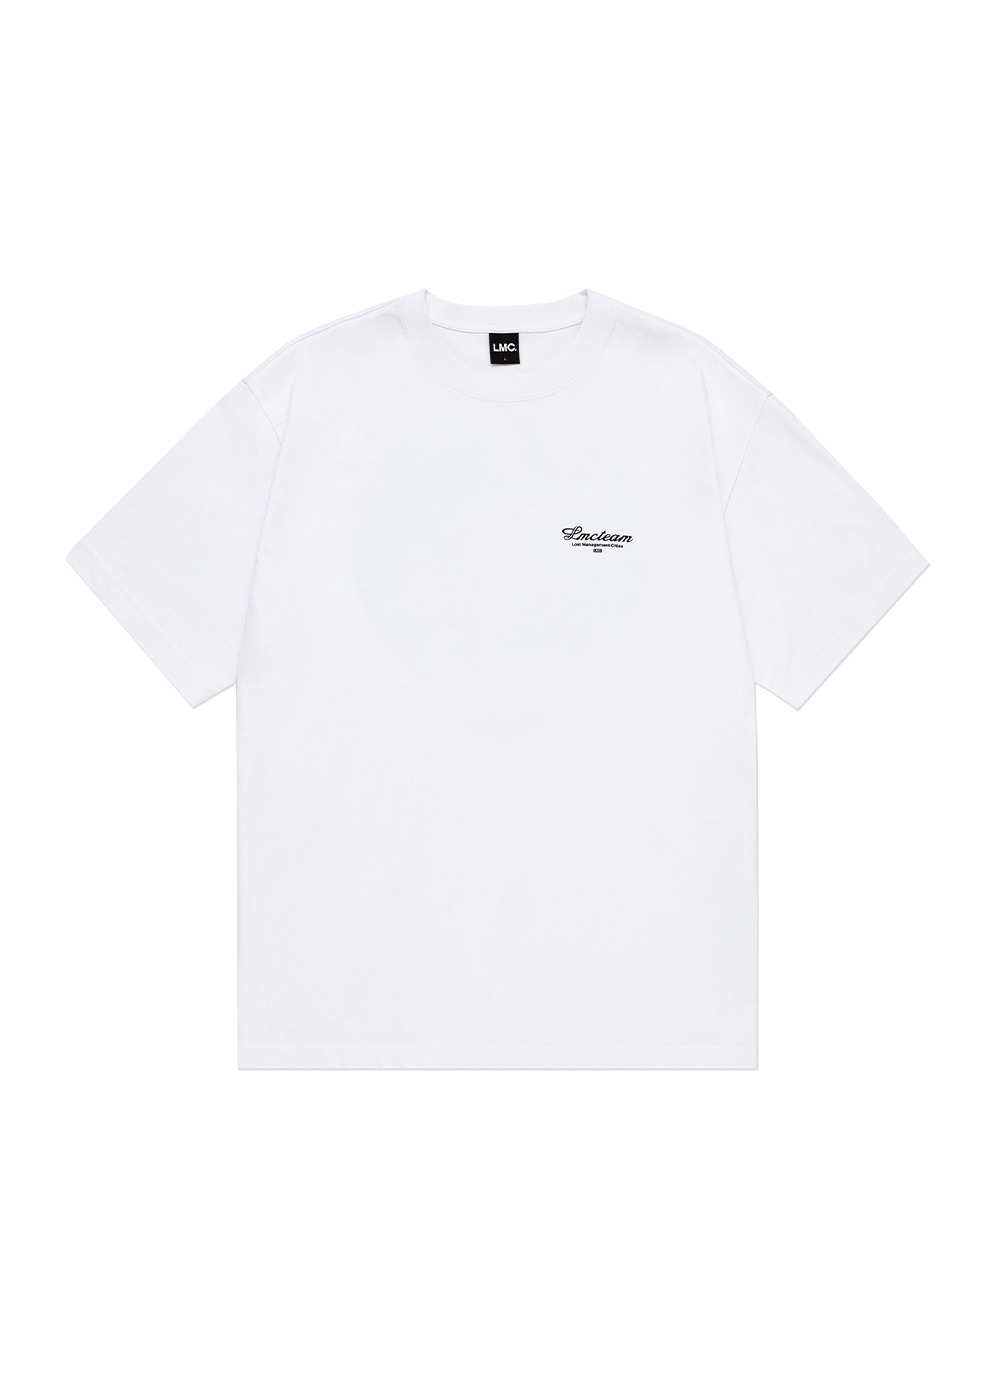 LMC TEAM EARTH ORGANIC TEE white